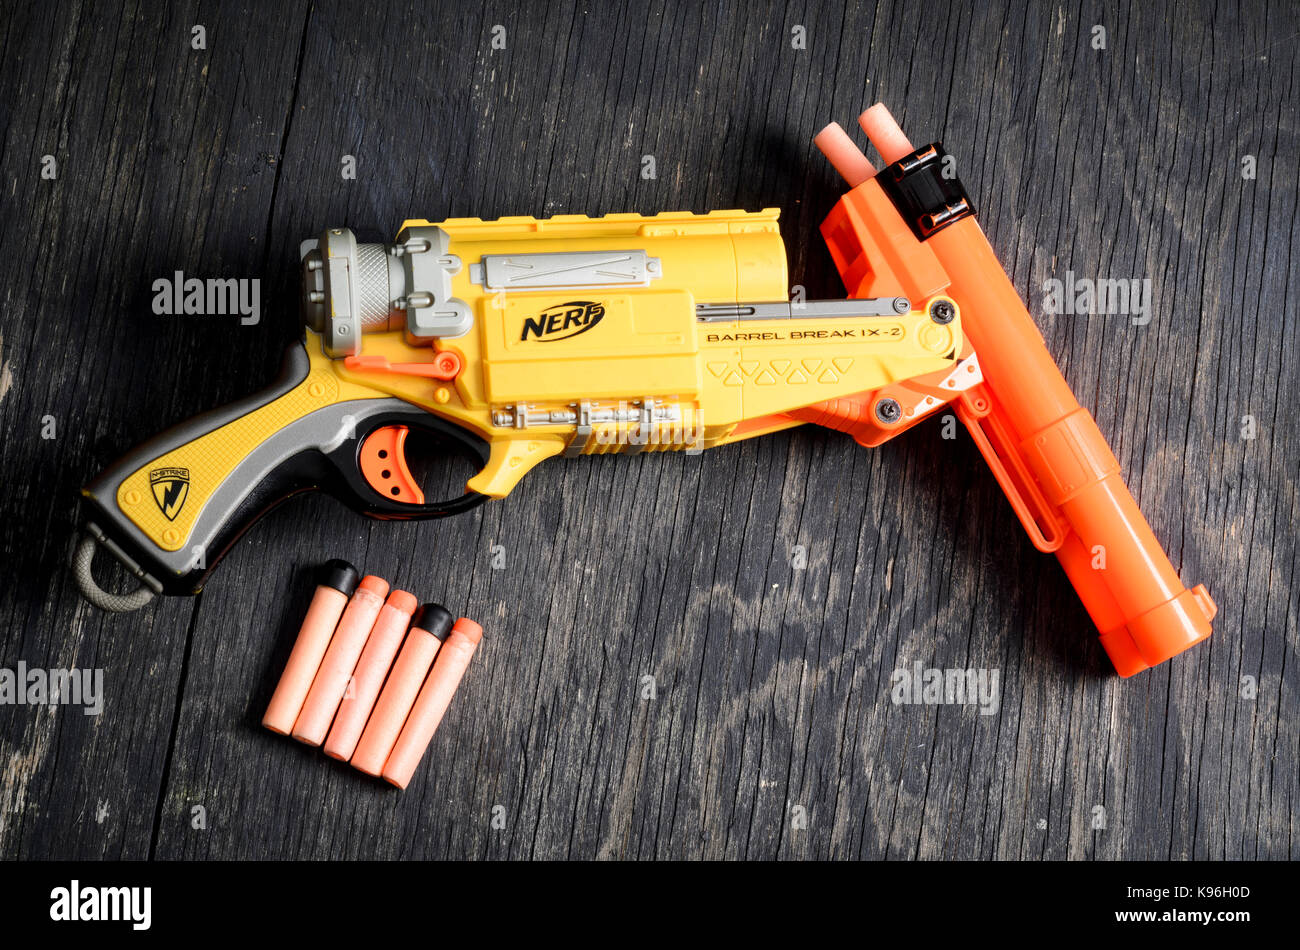 Toy Guns With Bullets Nerf Guns Stock ...